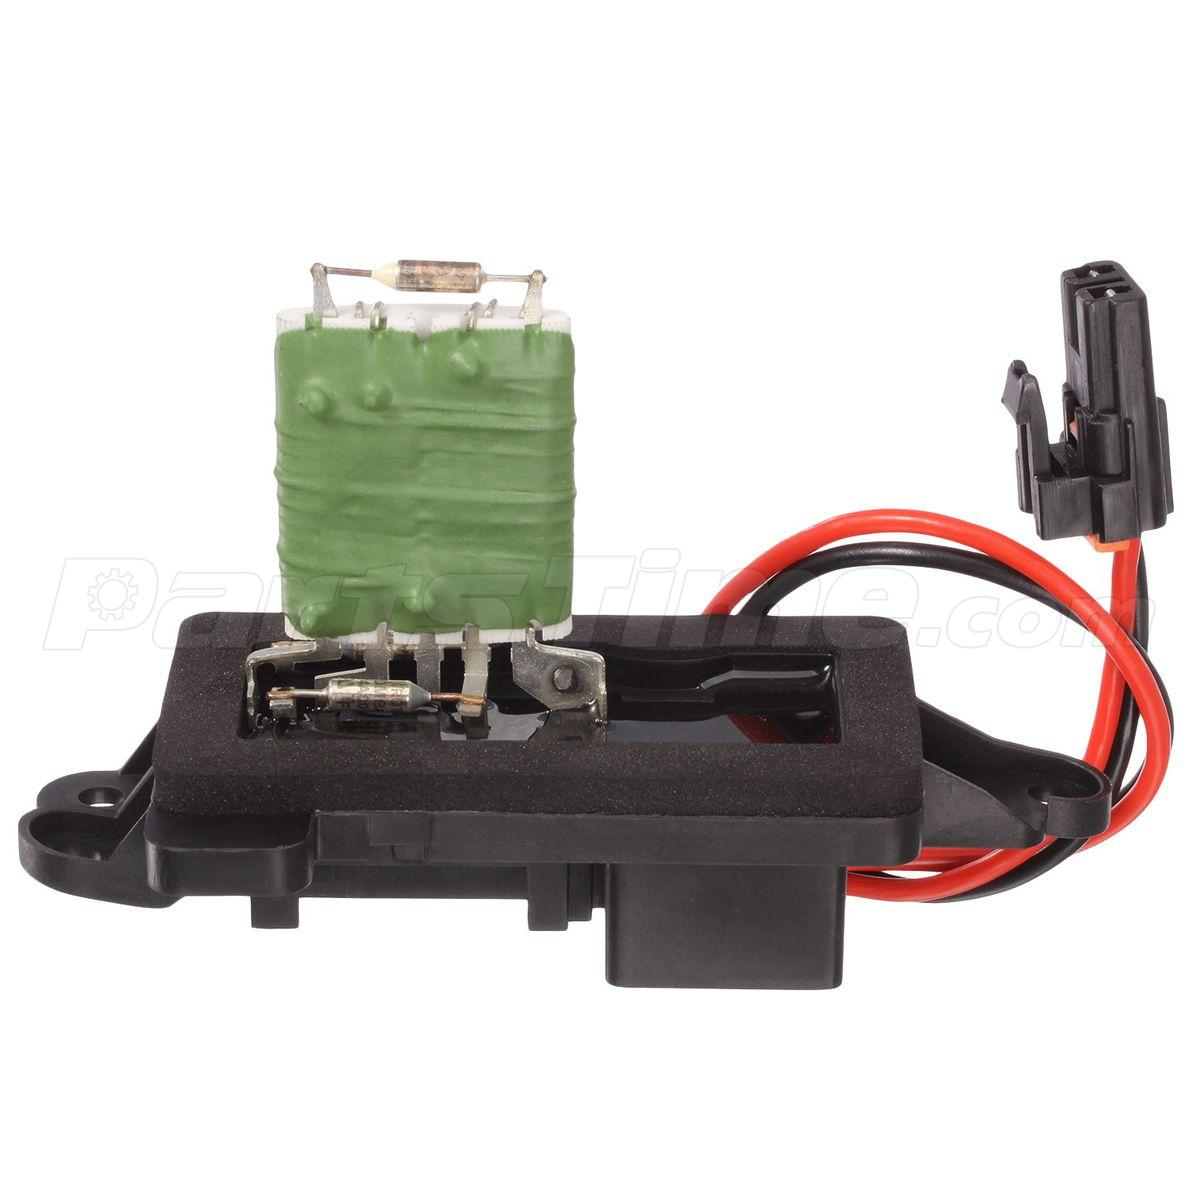 125574 6 blower motor resistor wiring harness blower motor resistor w cbt1c110 blower motor wiring harness at mifinder.co